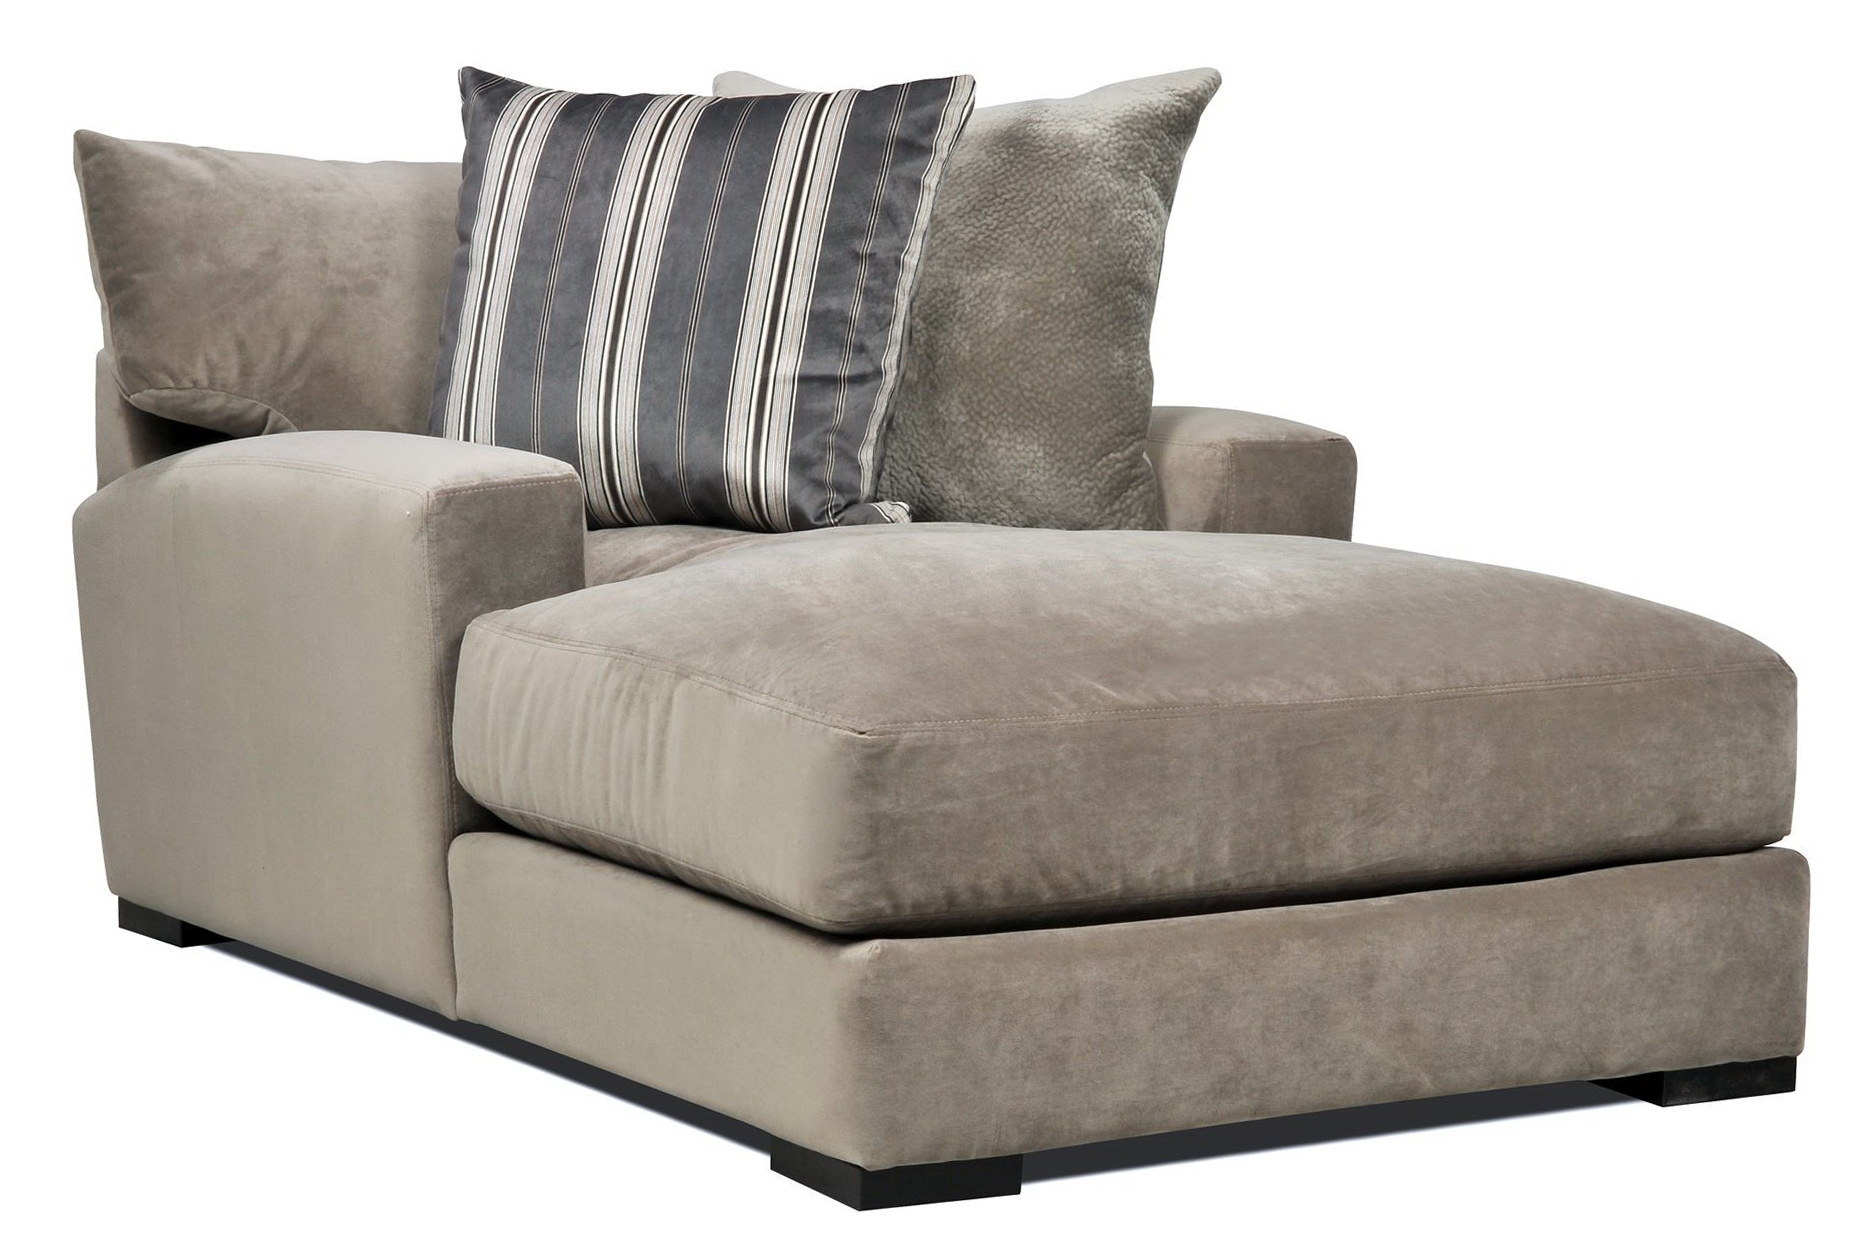 Double Wide Chaise Lounge Indoor With 2 Cushions (View 9 of 15)